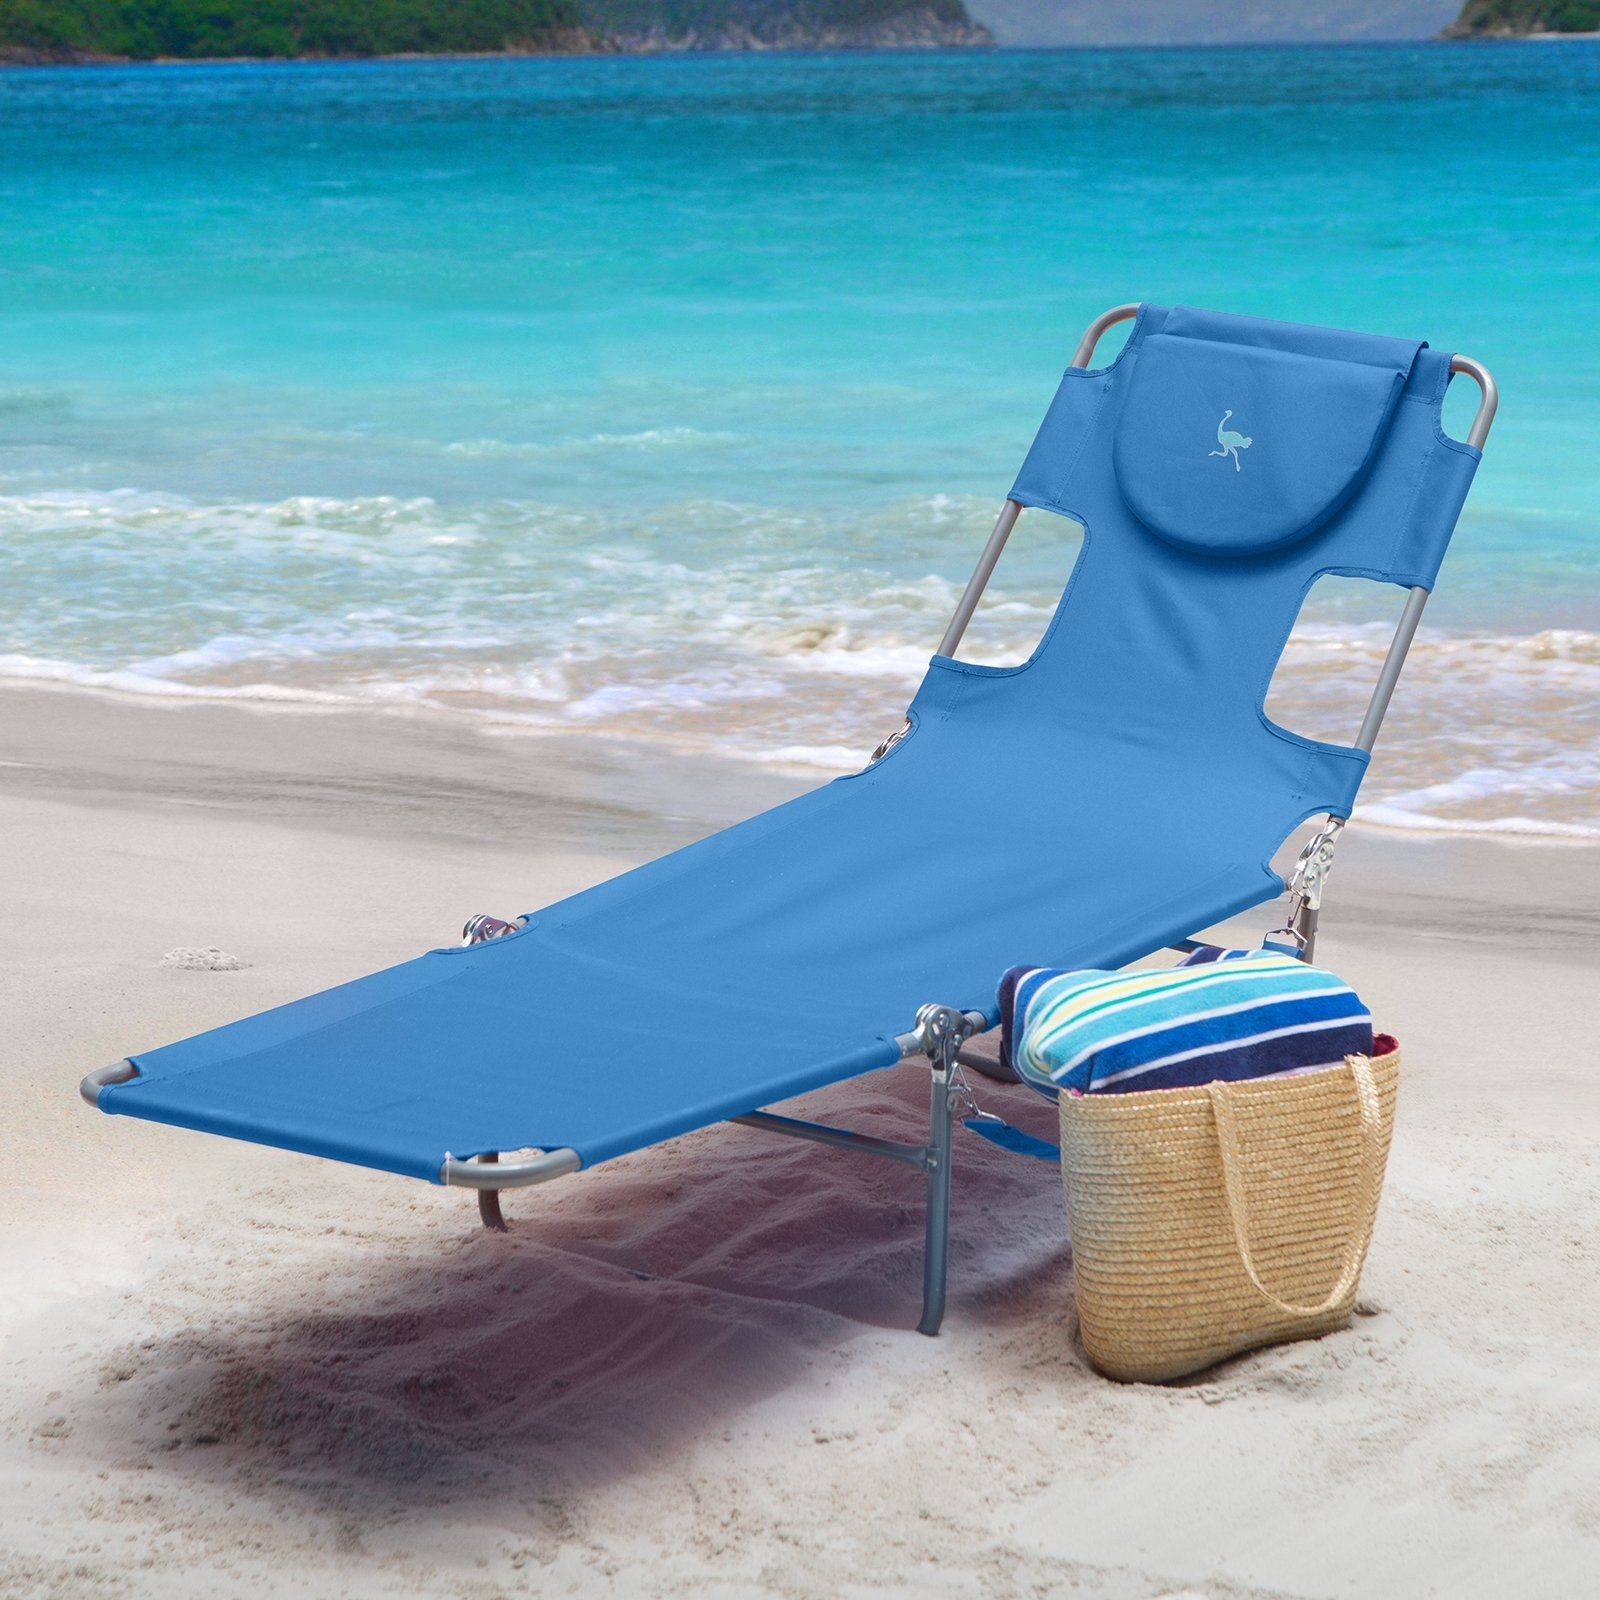 Ostrich Folding Chaise Lounge – Walmart With Regard To 2017 Ostrich Chair Folding Chaise Lounges (View 1 of 15)